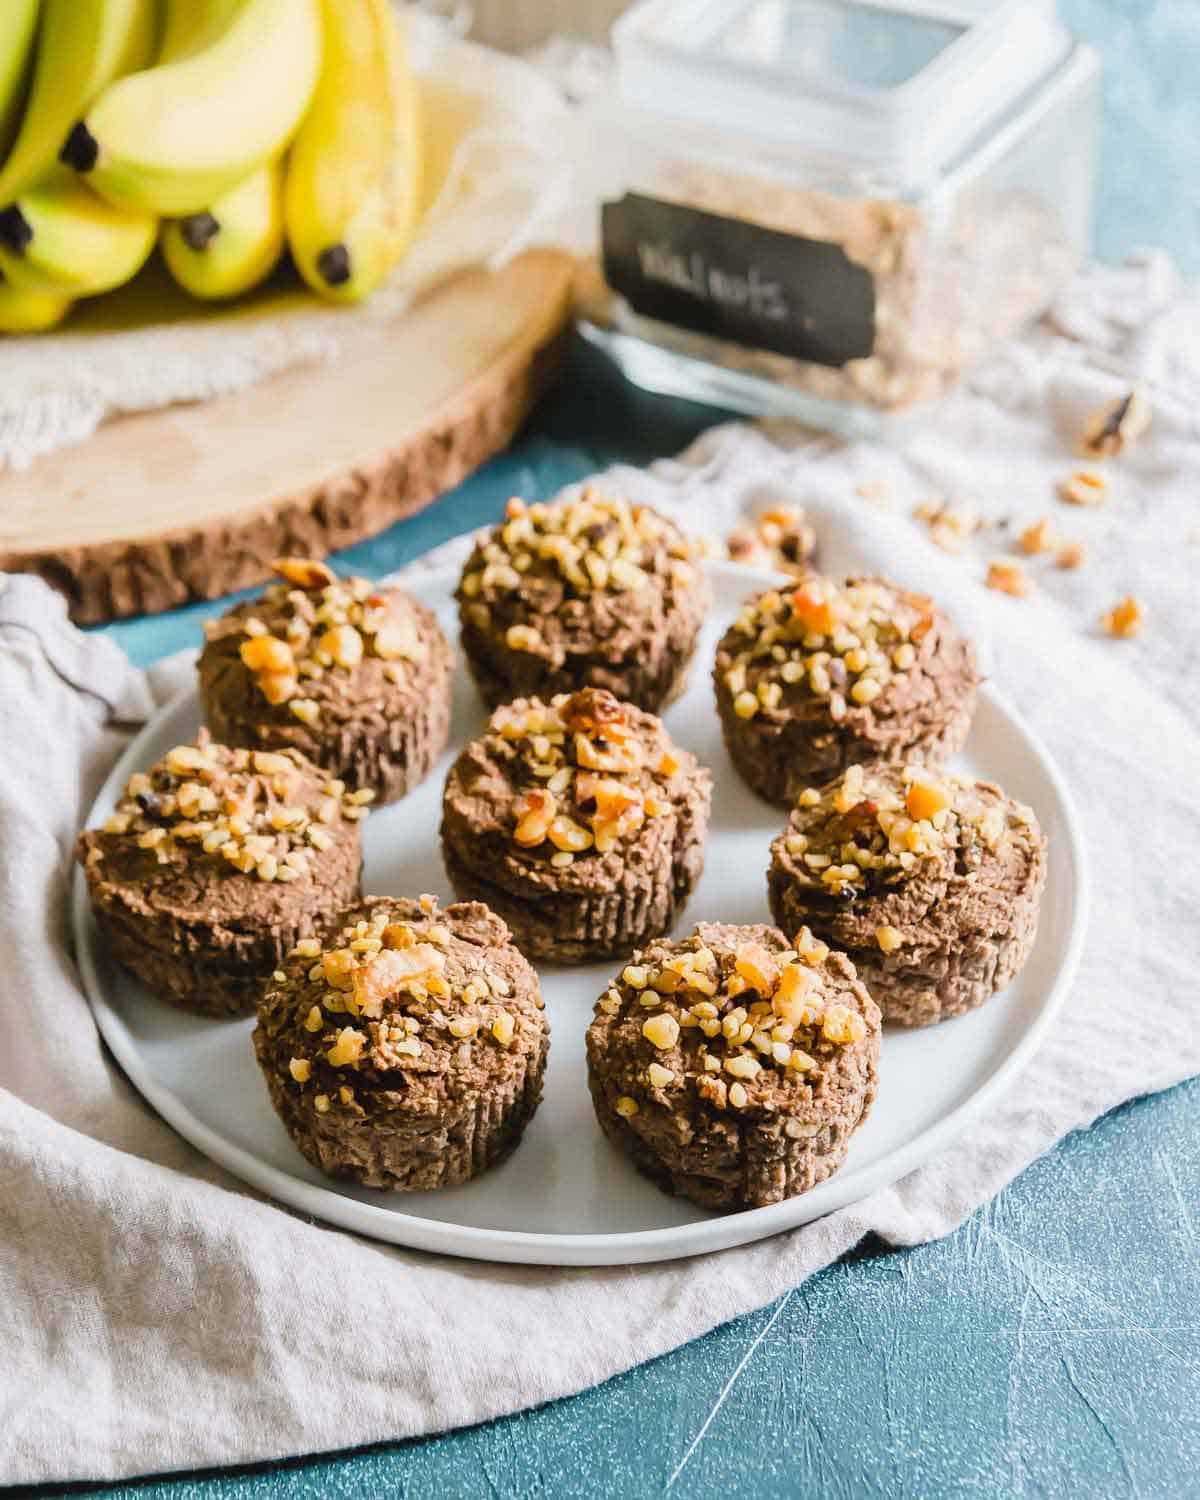 These banana nut almond pulp muffins are a great way to use leftover almond pulp from making homemade almond milk.